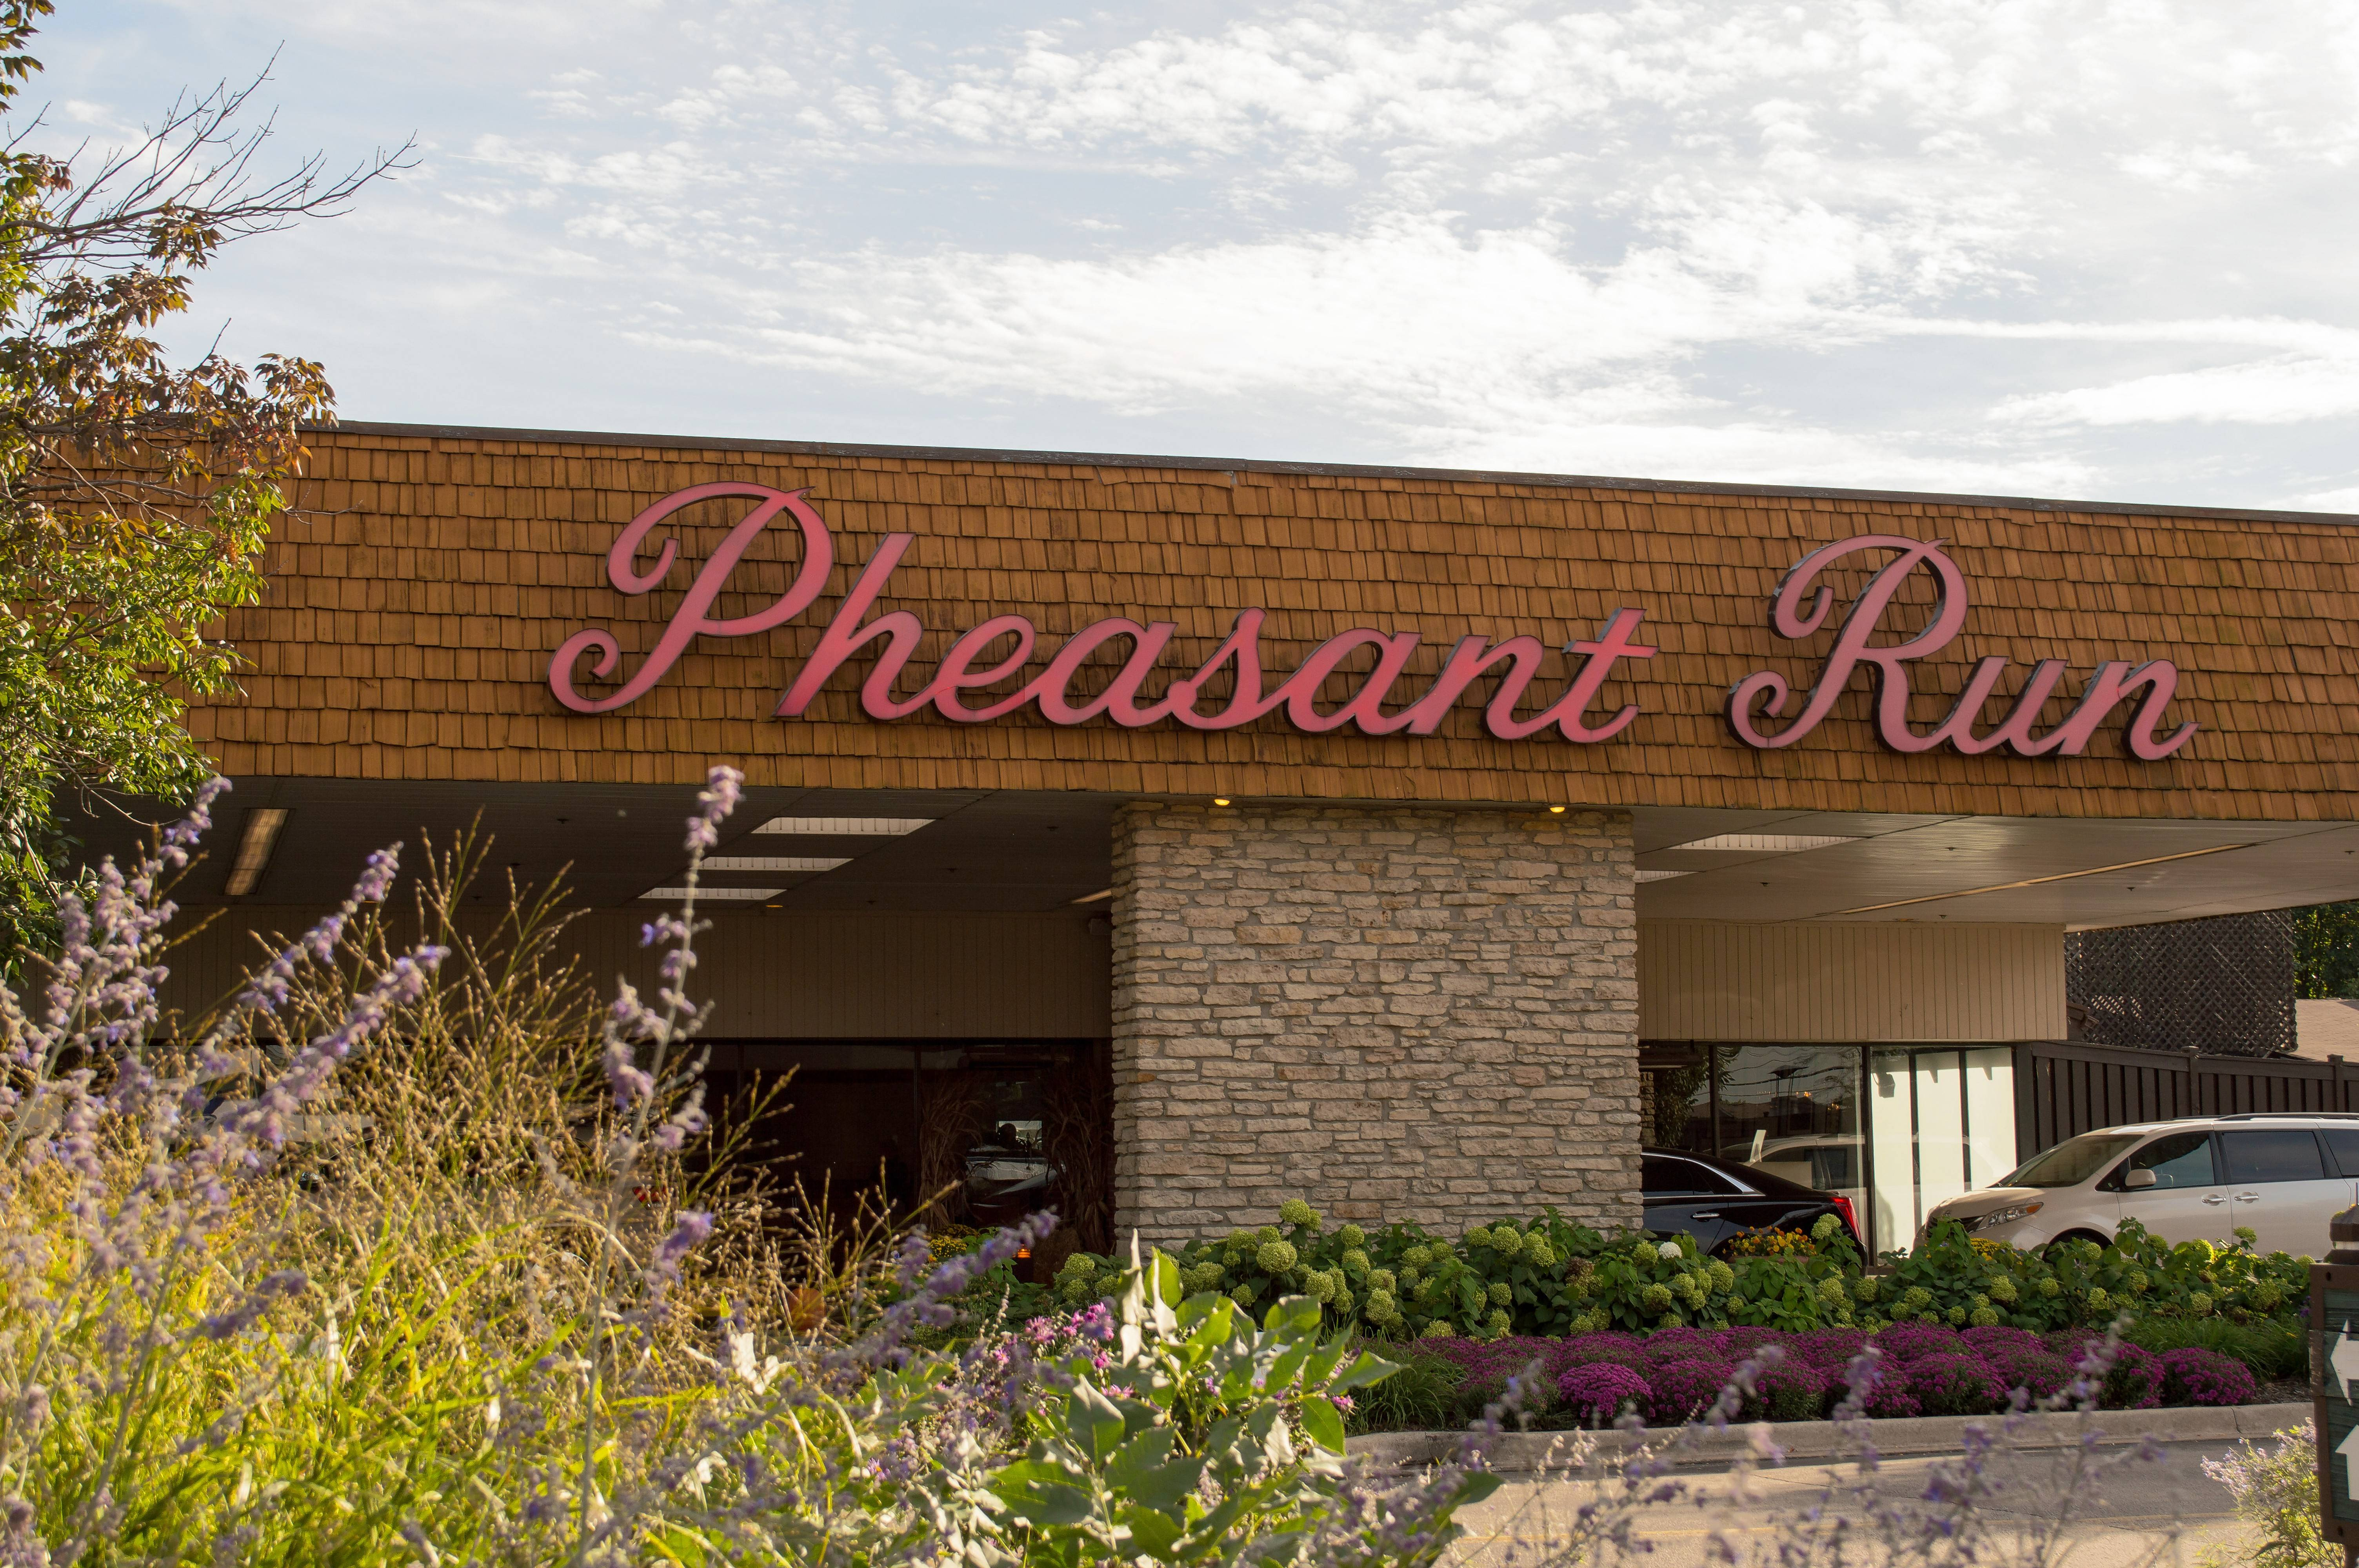 Pheasant Run officials envisioned adding a residential community to the iconic resort property. That plan was squashed by a disagreement with the neighboring DuPage Airport. Now resort management plans extensive remodeling and the addition of retail stores to keep the historic property thriving in the city for years to come.